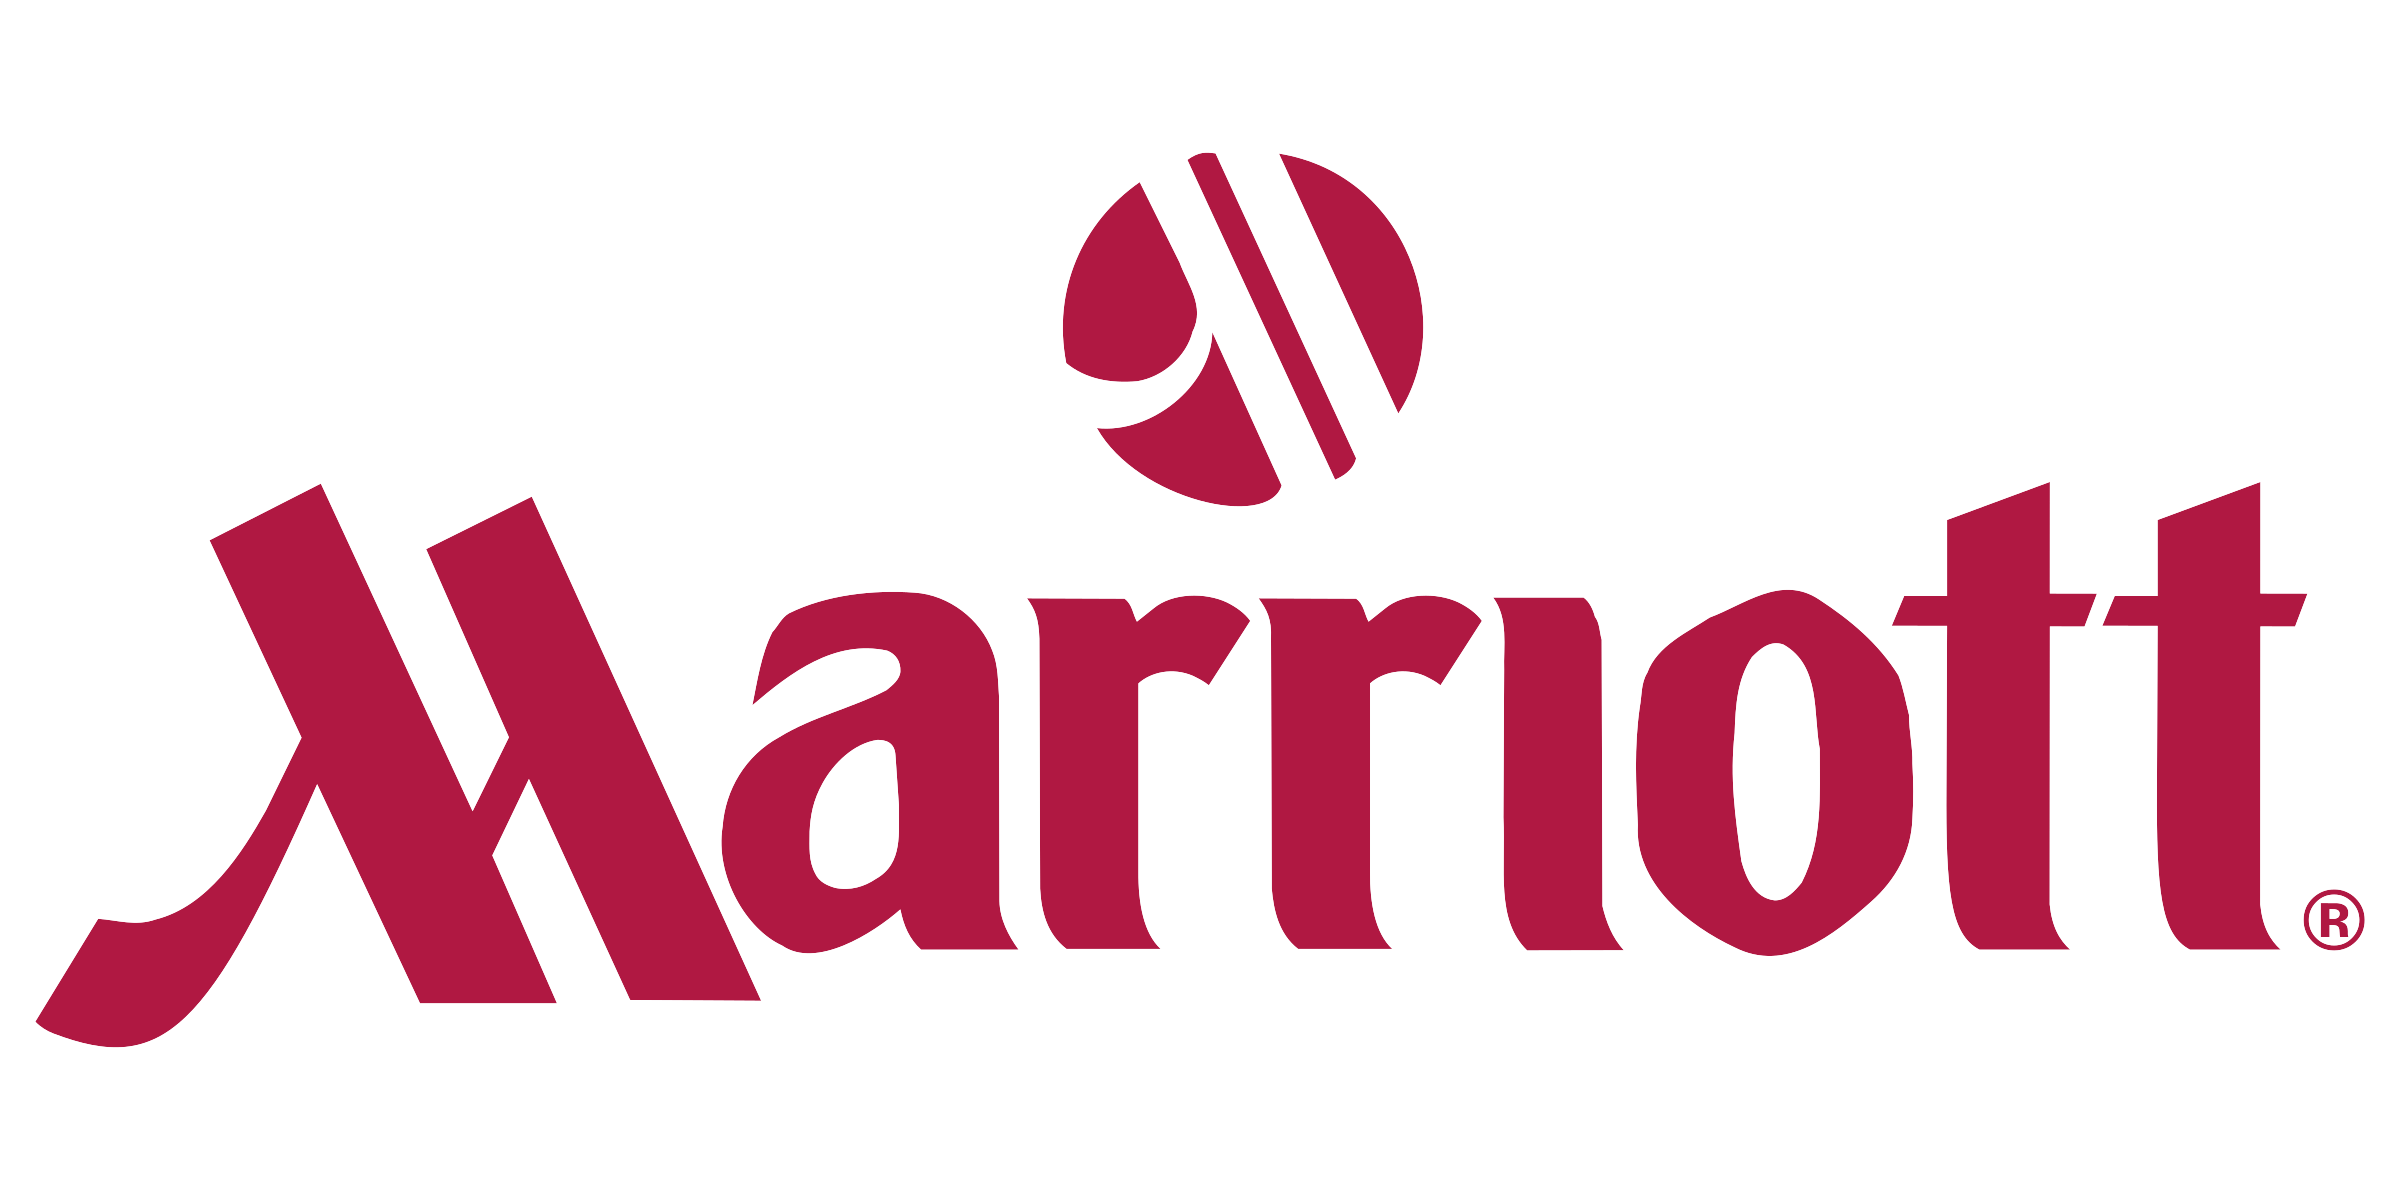 studio arts Marriott logo